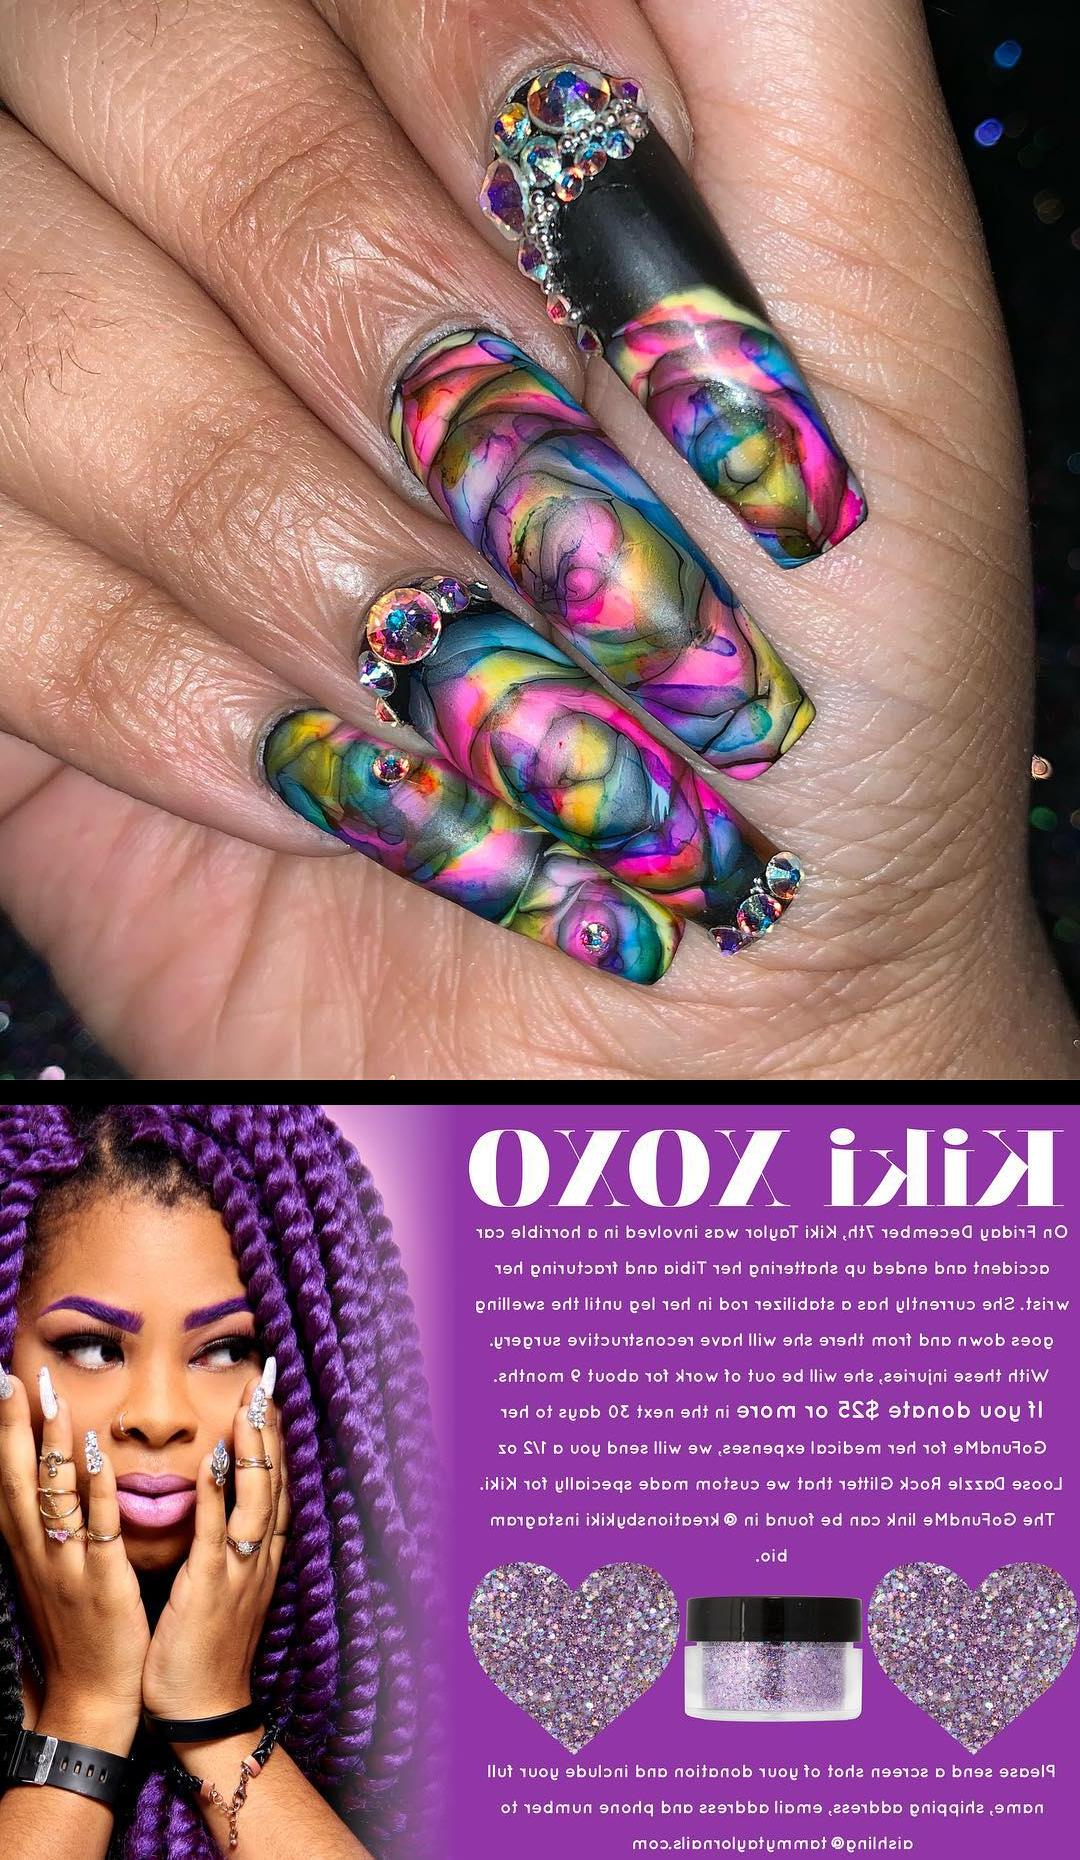 top nails,acrylic nails,Rainbow dripppp , nopolish , allacrylic , kreationsbykiki , nails , ncnails , raleighnails , durhamnails , glitter , glitternails , tumblr , nailsofinstagram , nailsoftheday , nailpro , fashion , nailart , nailtutorial , bgdn , blackgirlsdonails , blacknailtechs , naillife , nailsmagazine , tumblrfeature , dulcenailsprinkles tammytaylornails will send a free 1/2 oz KIKI loose dazzle rock glitter (custom made especially for me) to anyone who donates $25 or more in the next 30 days to my GOFUNDME OR CASH APP  for medical expenses. Click the link in my bio and screenshot your confirmed donation as well as your full name, email address, shipping address and phone number to aishlingtammytaylornails.com to claim yours! Thank you so much tammytaylornails and lingmitchelll this means the world to me!  MAKE SURE YOU SPELL THE EMAIL CORRECTLY!!